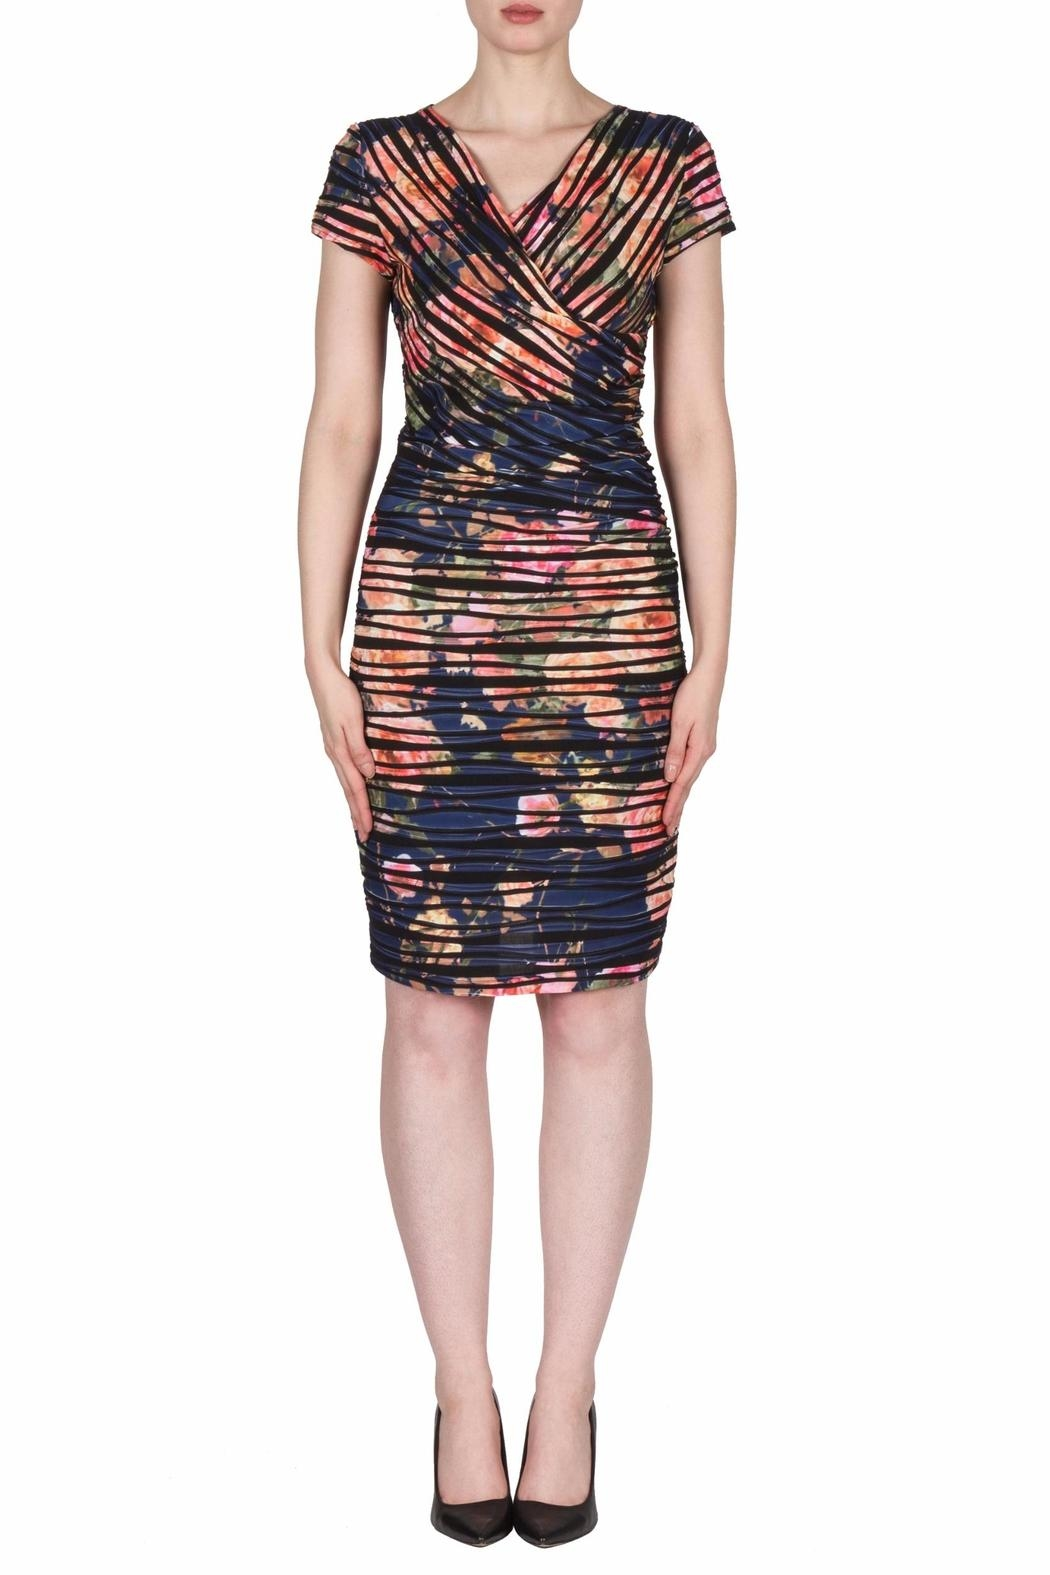 Joseph Ribkoff Vanessa Dress - Main Image